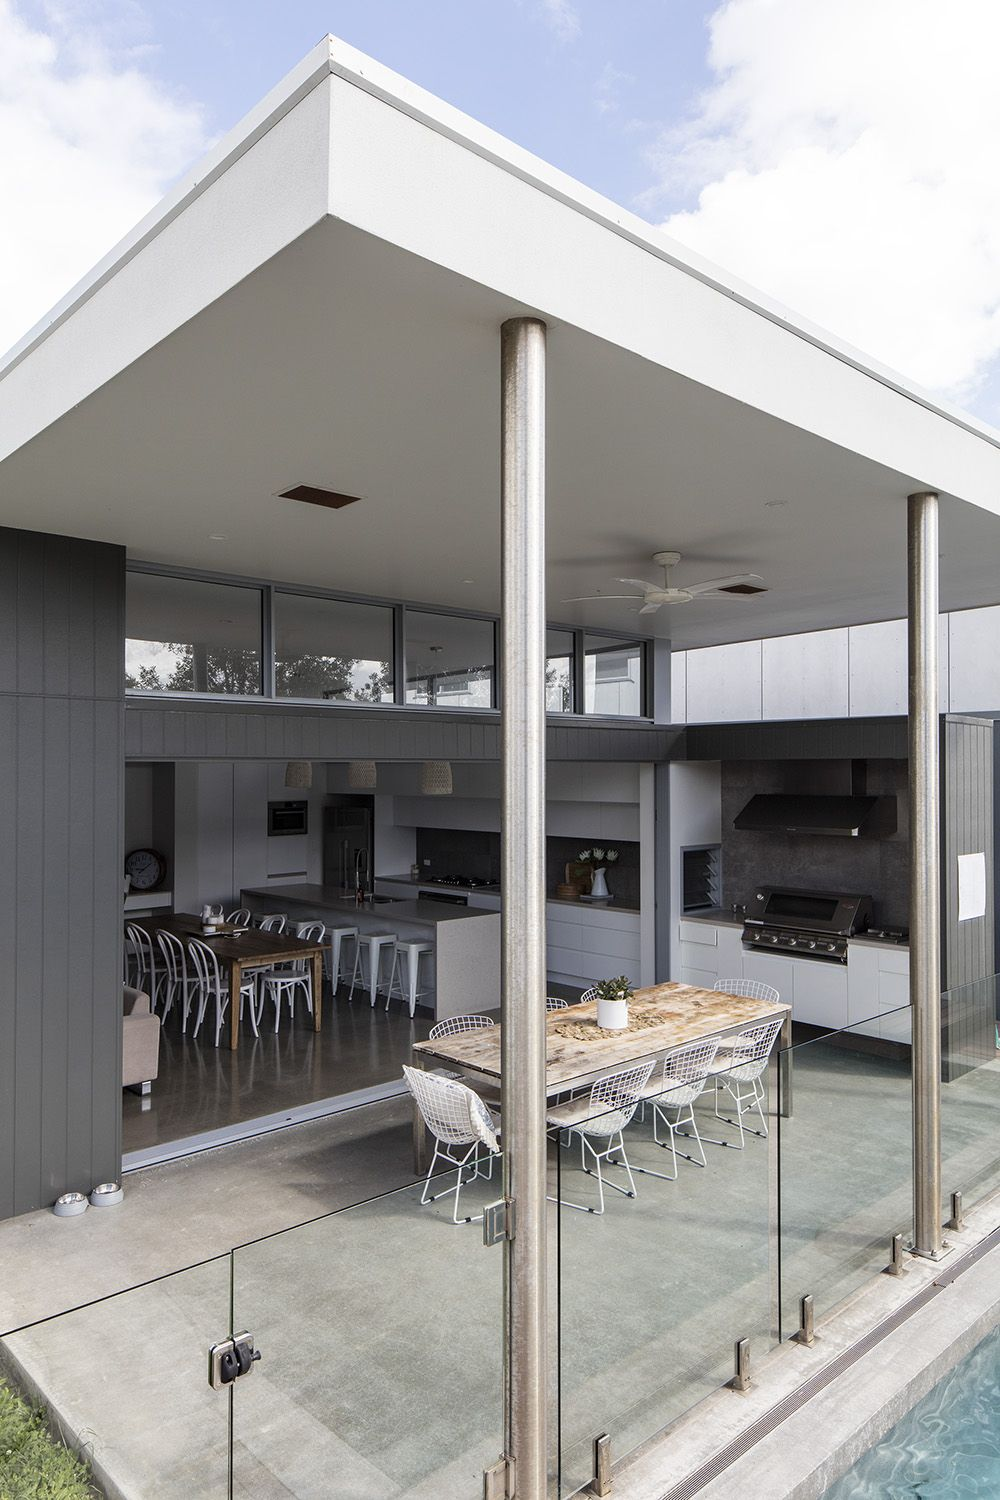 External view of this modern home design by immackulate designer homes the dicky beach project located on sunshine coast qld australia also rh pinterest